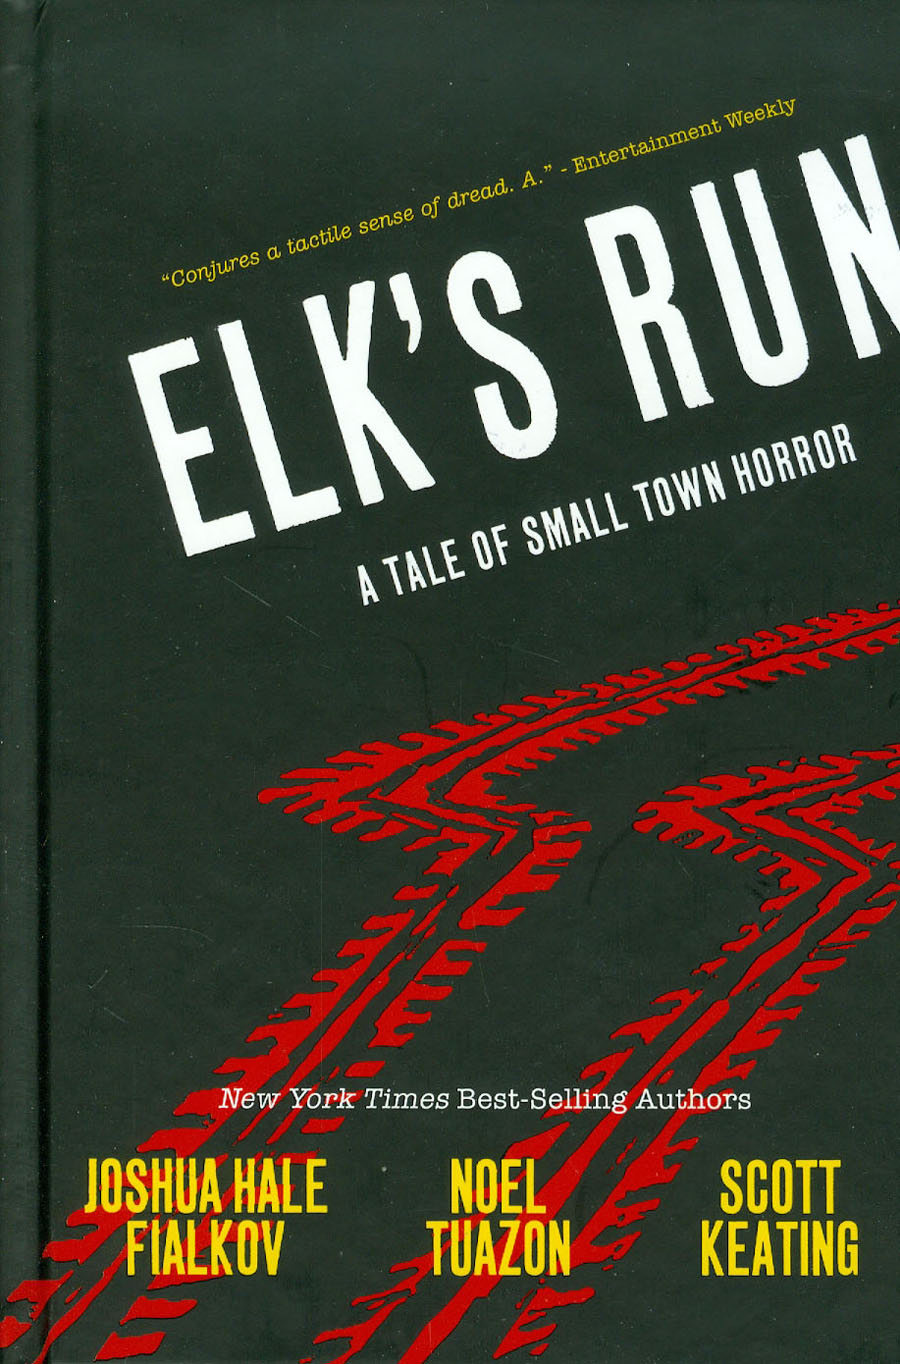 Elks Run A Tale Of Small Town Horror 10th Anniversary Edition HC